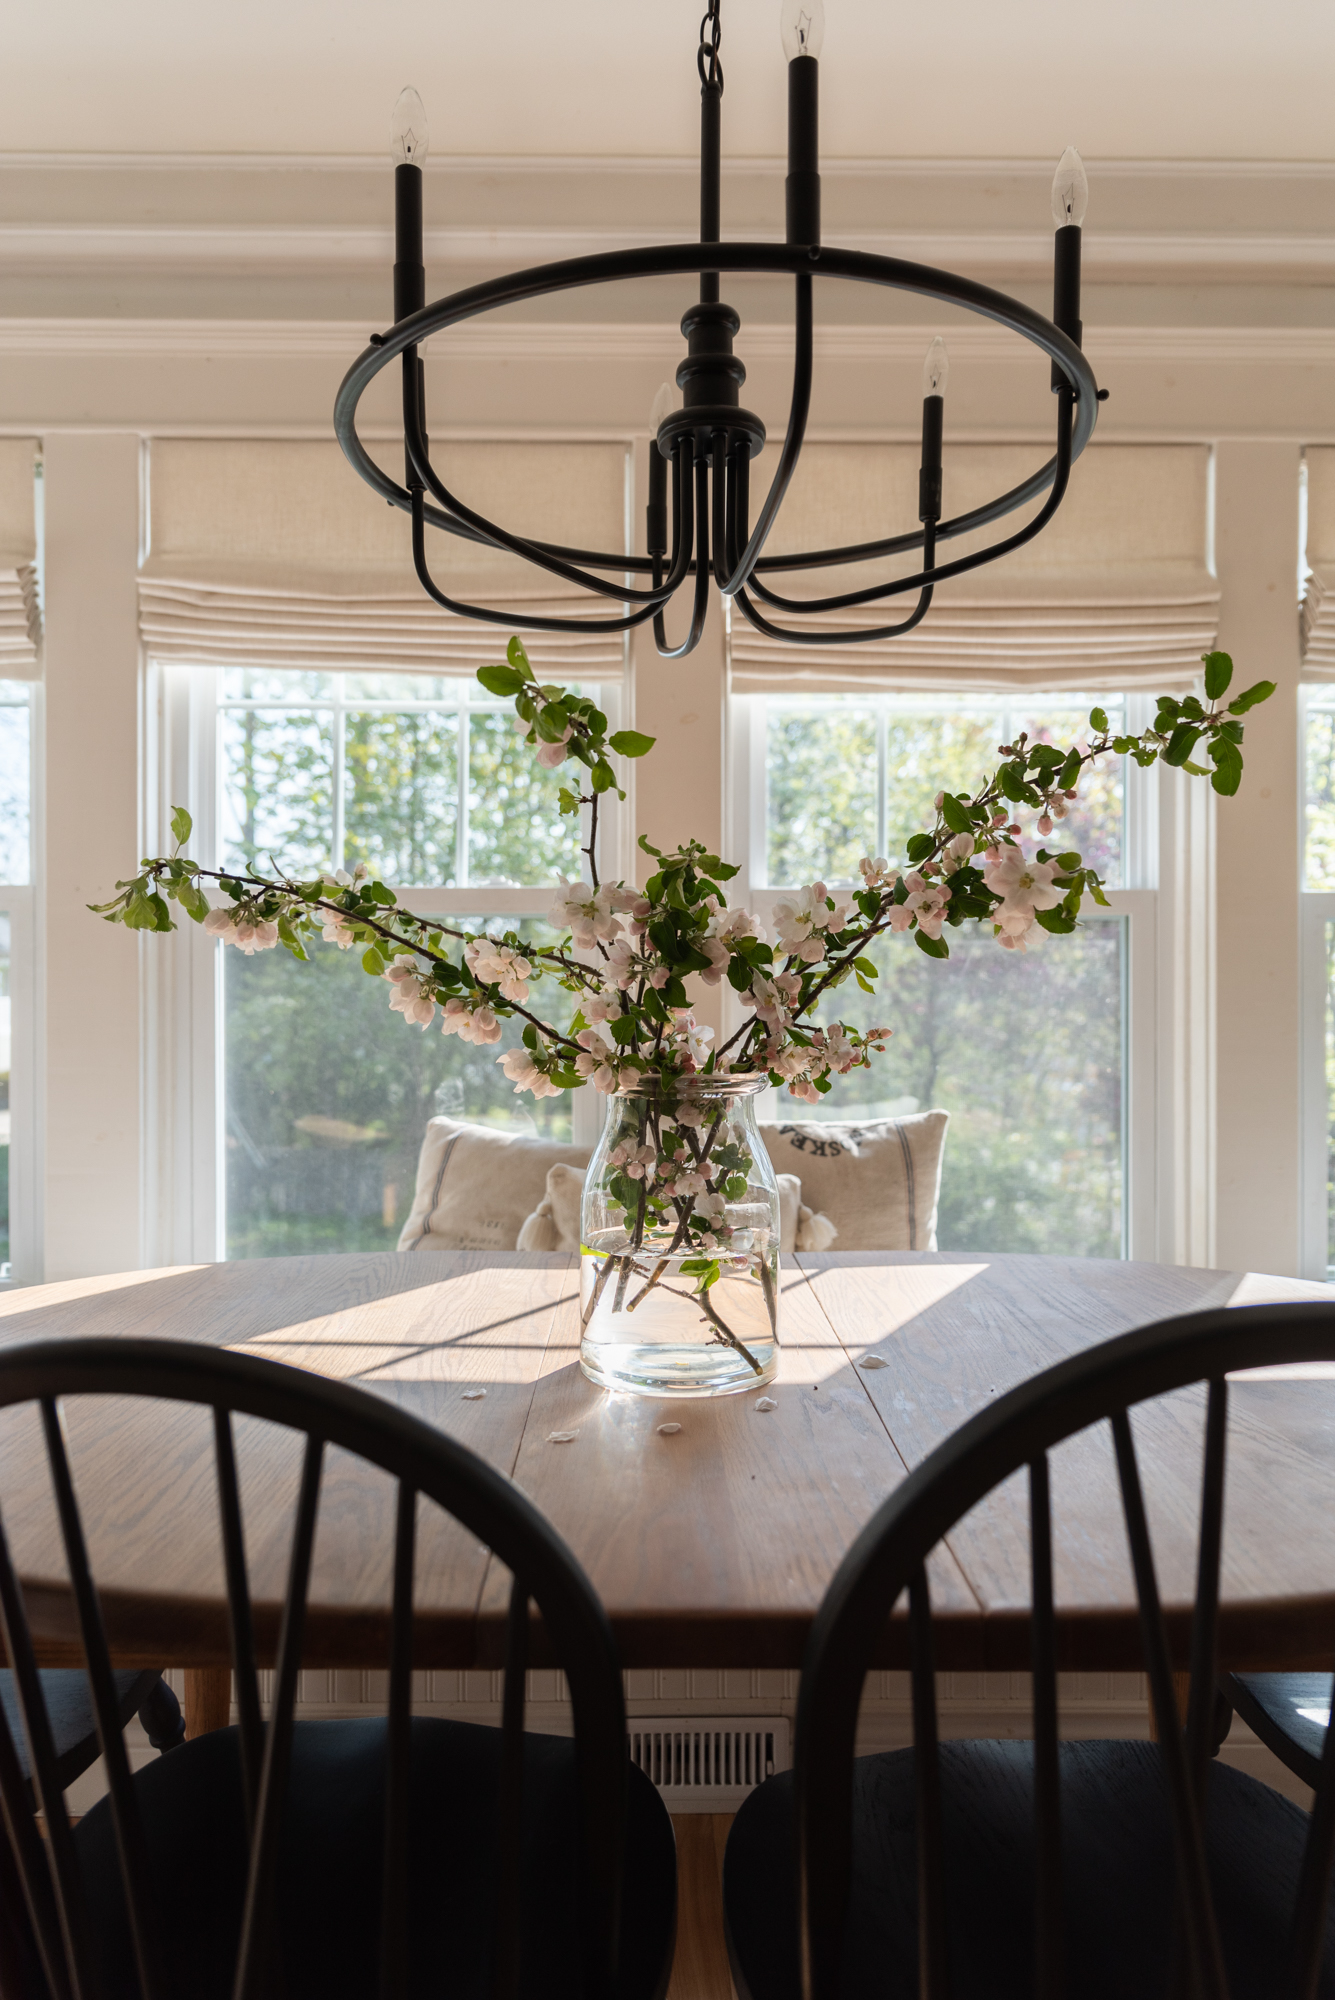 the wild decoelis | apple blossom branches in the house as decorations. Built in bench, refinished wood floors, black chairs, baskers, black vase, black chandelier, vintage art.